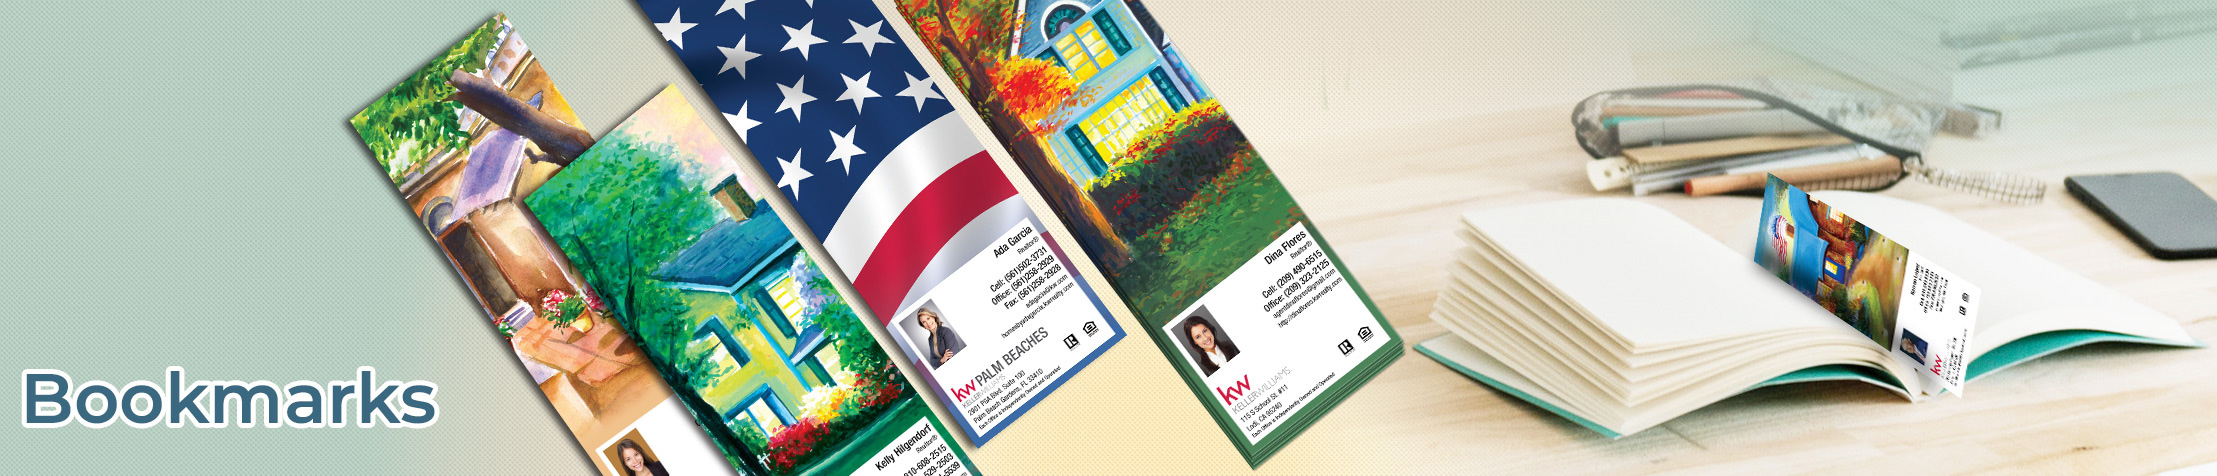 Keller Williams Real Estate Bookmarks - KW approved vendor custom realtor bookmarks | BestPrintBuy.com